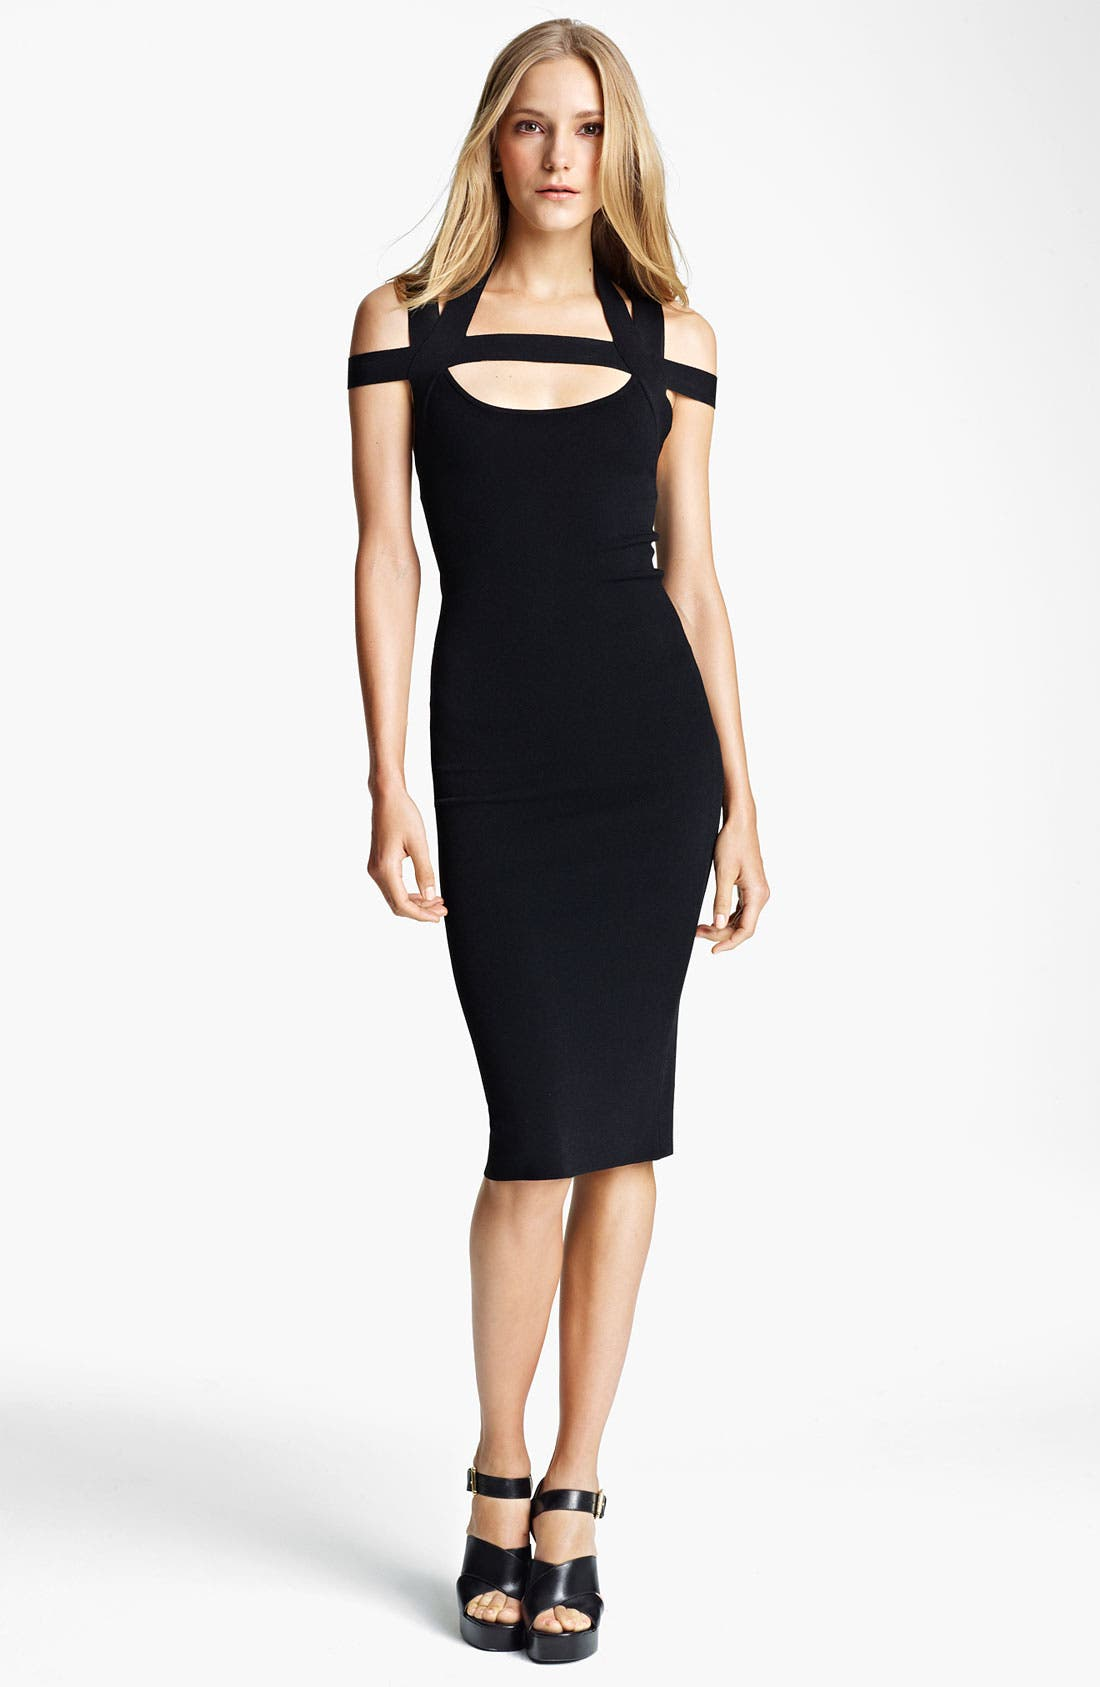 Alternate Image 1 Selected - Michael Kors Crisscross Matte Jersey Dress